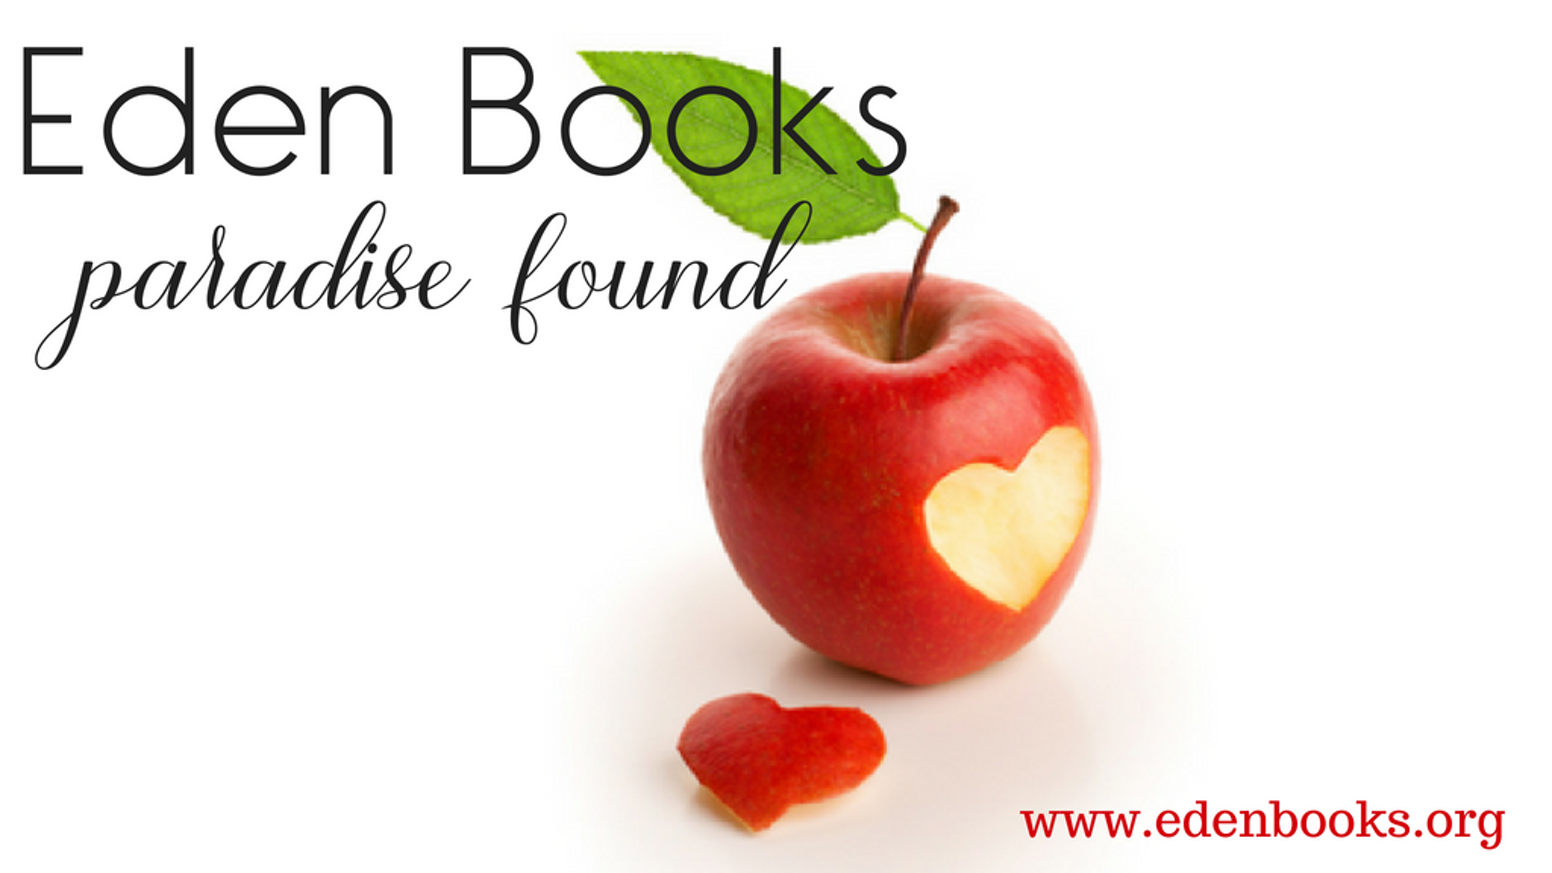 Eden Books is the only online bookstore dedicated to romance and women's fiction.